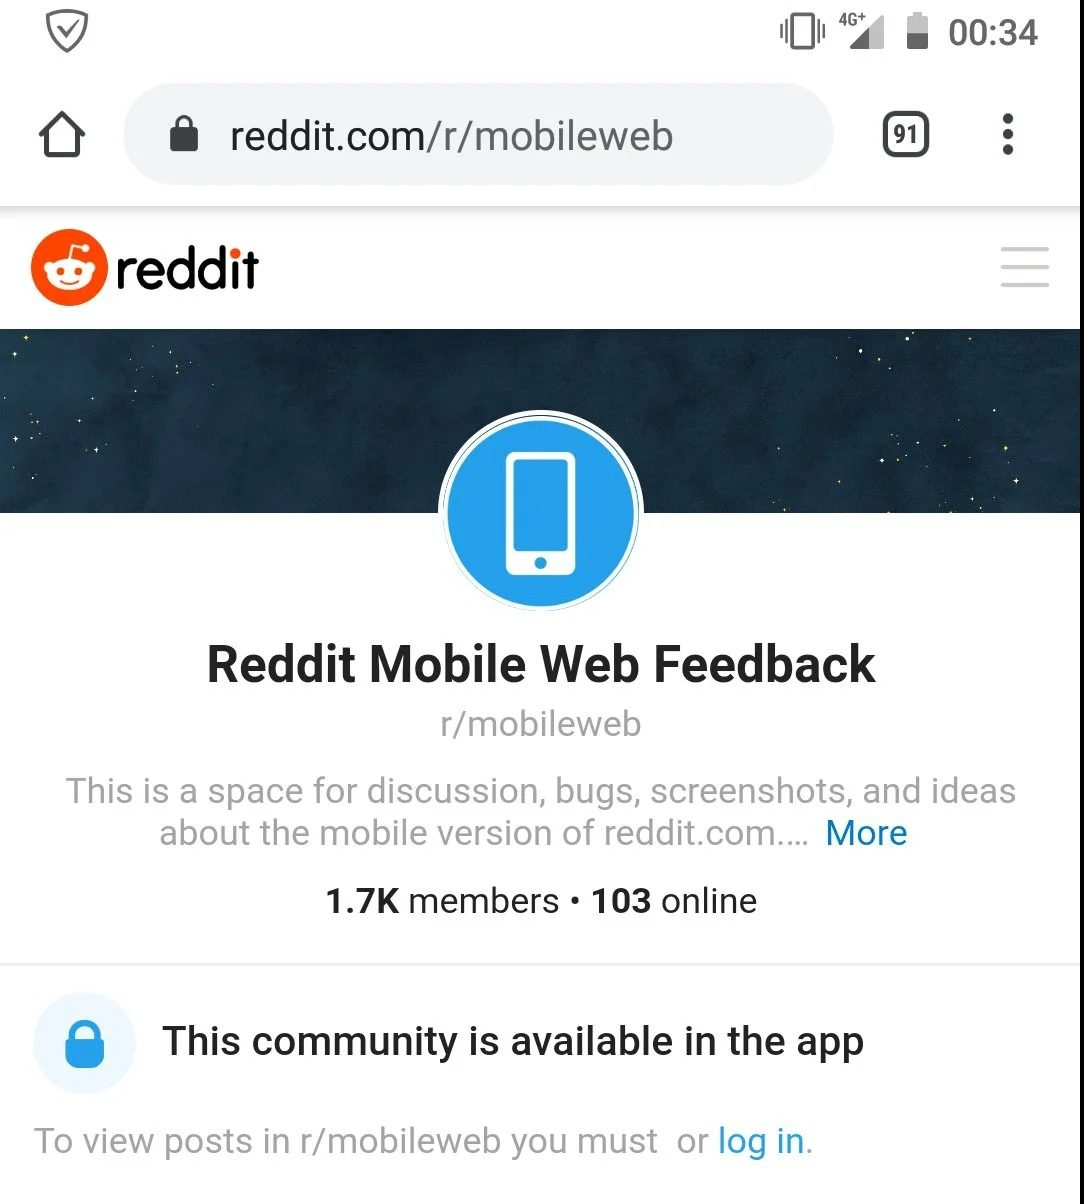 Reddit Tests Forcing Users To Login Or Use The App To Read Content